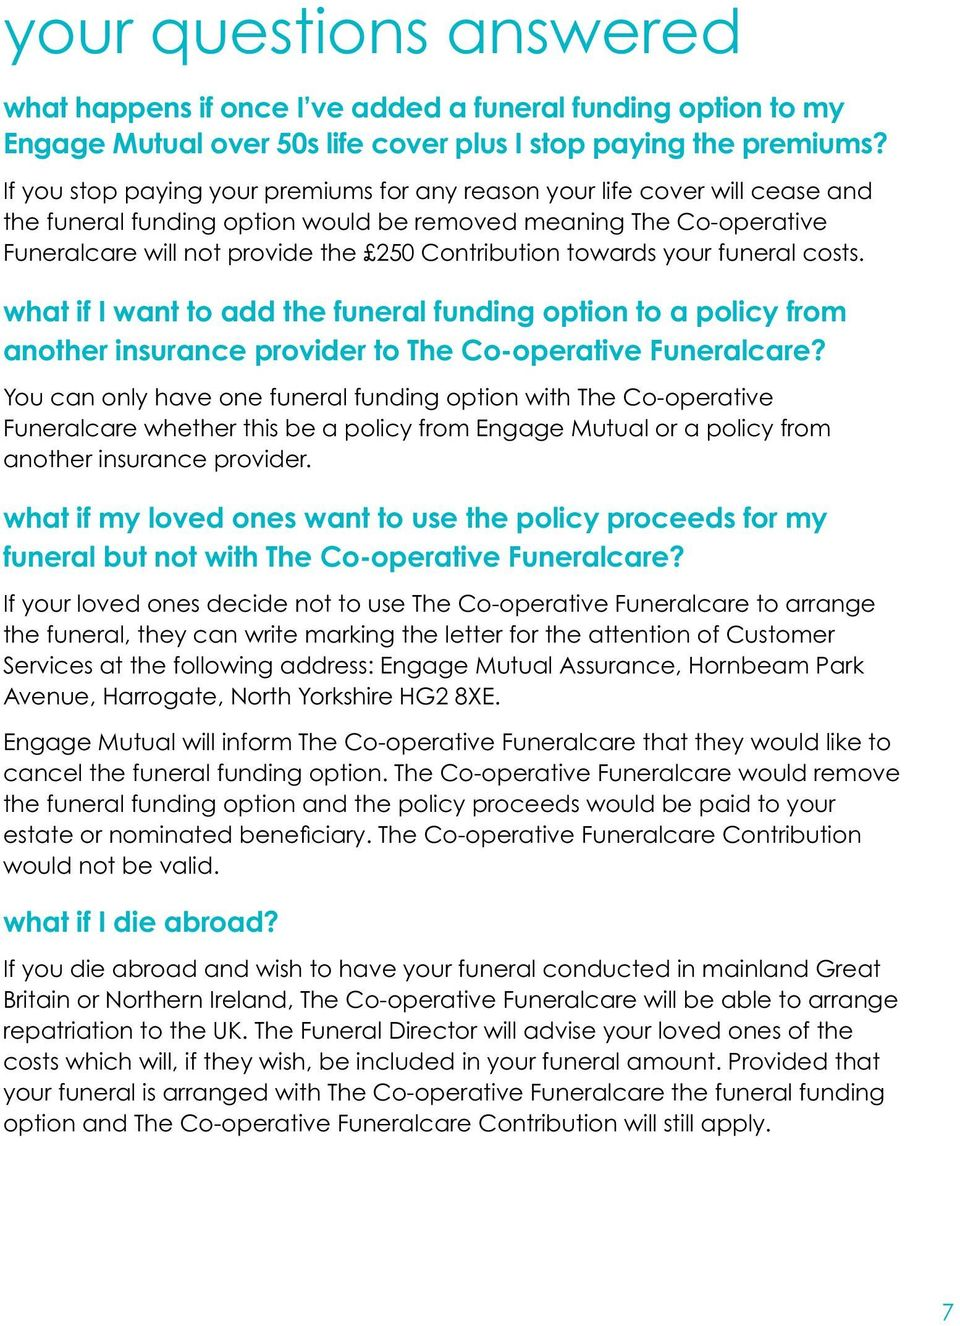 towards your funeral costs. what if I want to add the funeral funding option to a policy from another insurance provider to The Co-operative Funeralcare?